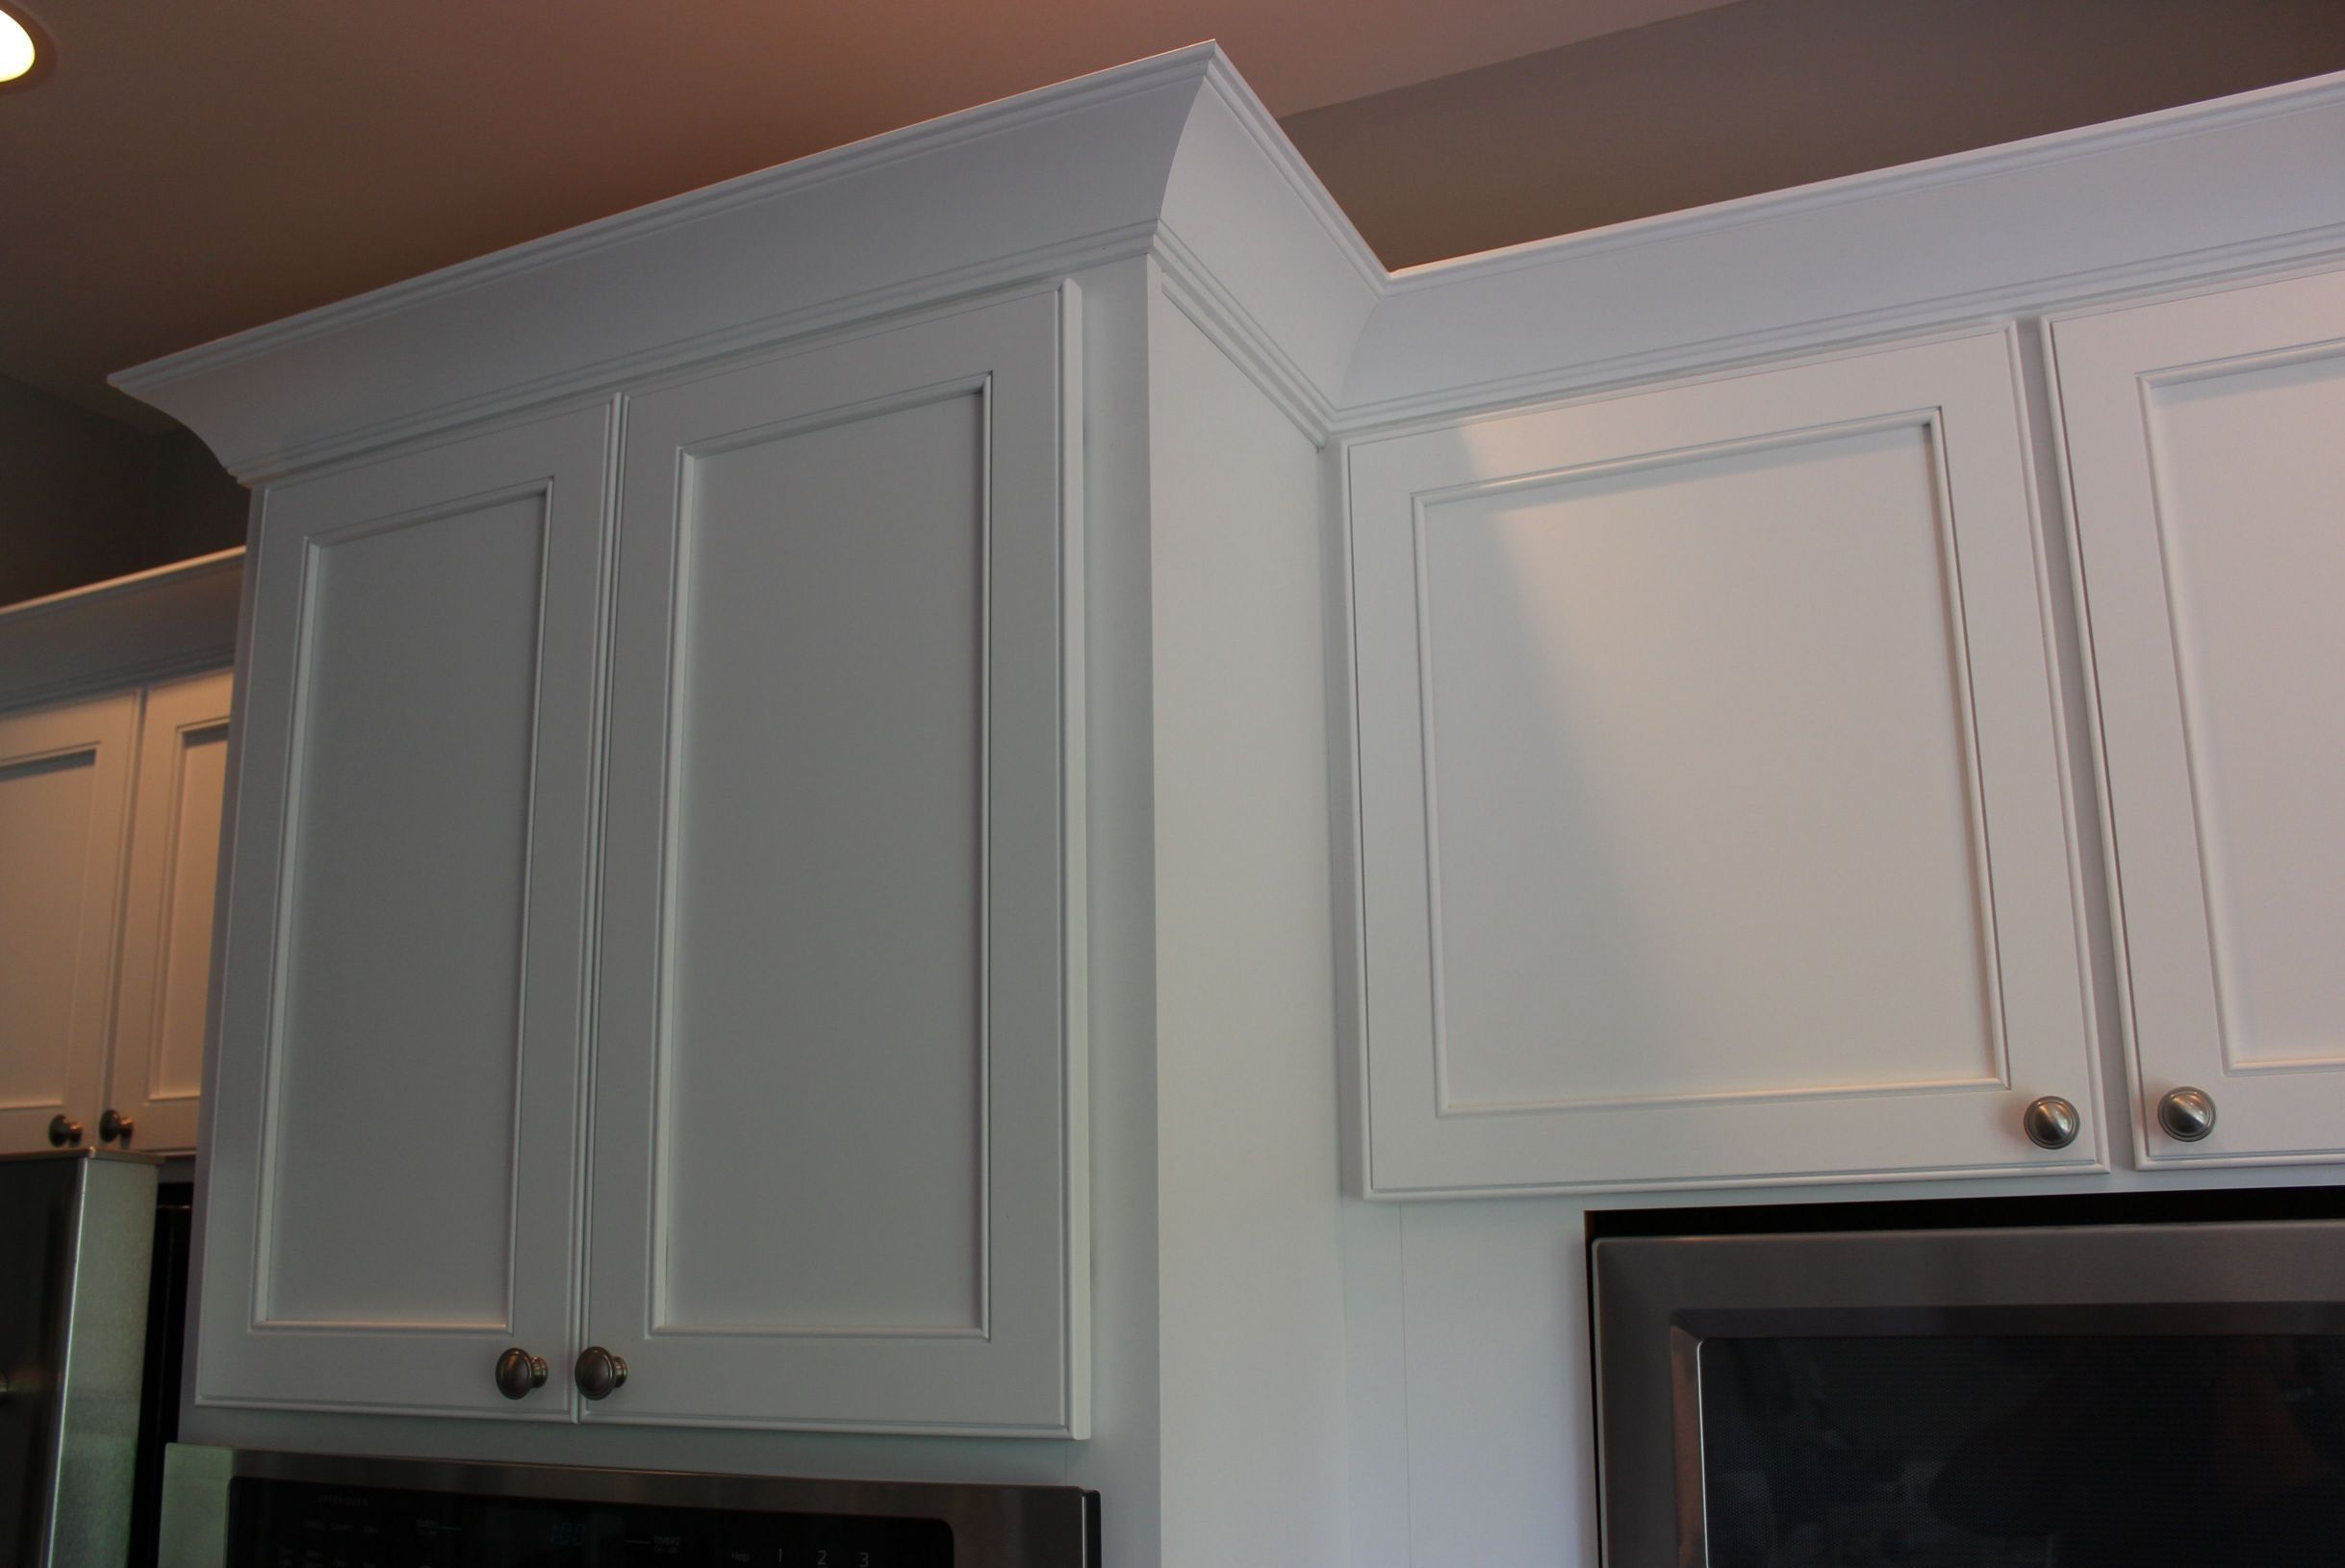 Pin By Renee Mccurry On Kitchen Remodel Home Remodeling Beadboard Backsplash Home Diy